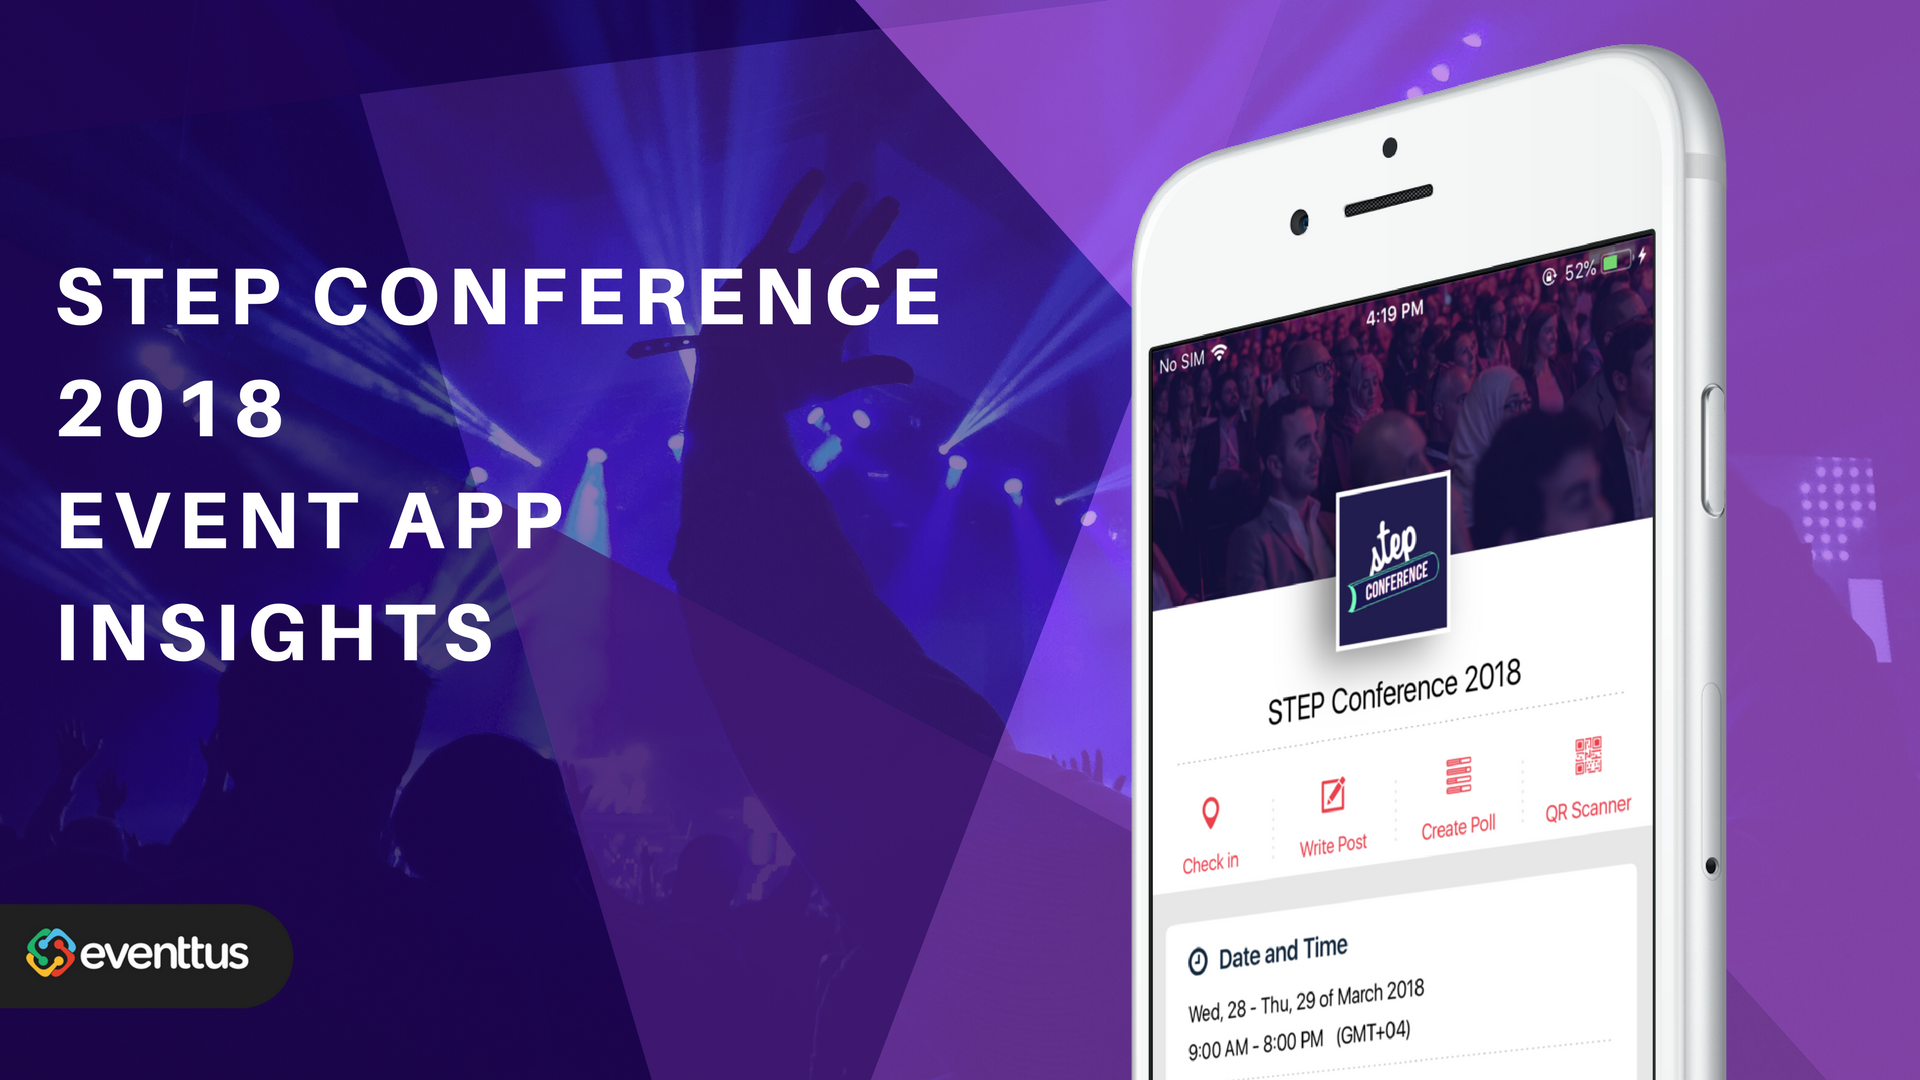 STEP Conference 2018 blog cover